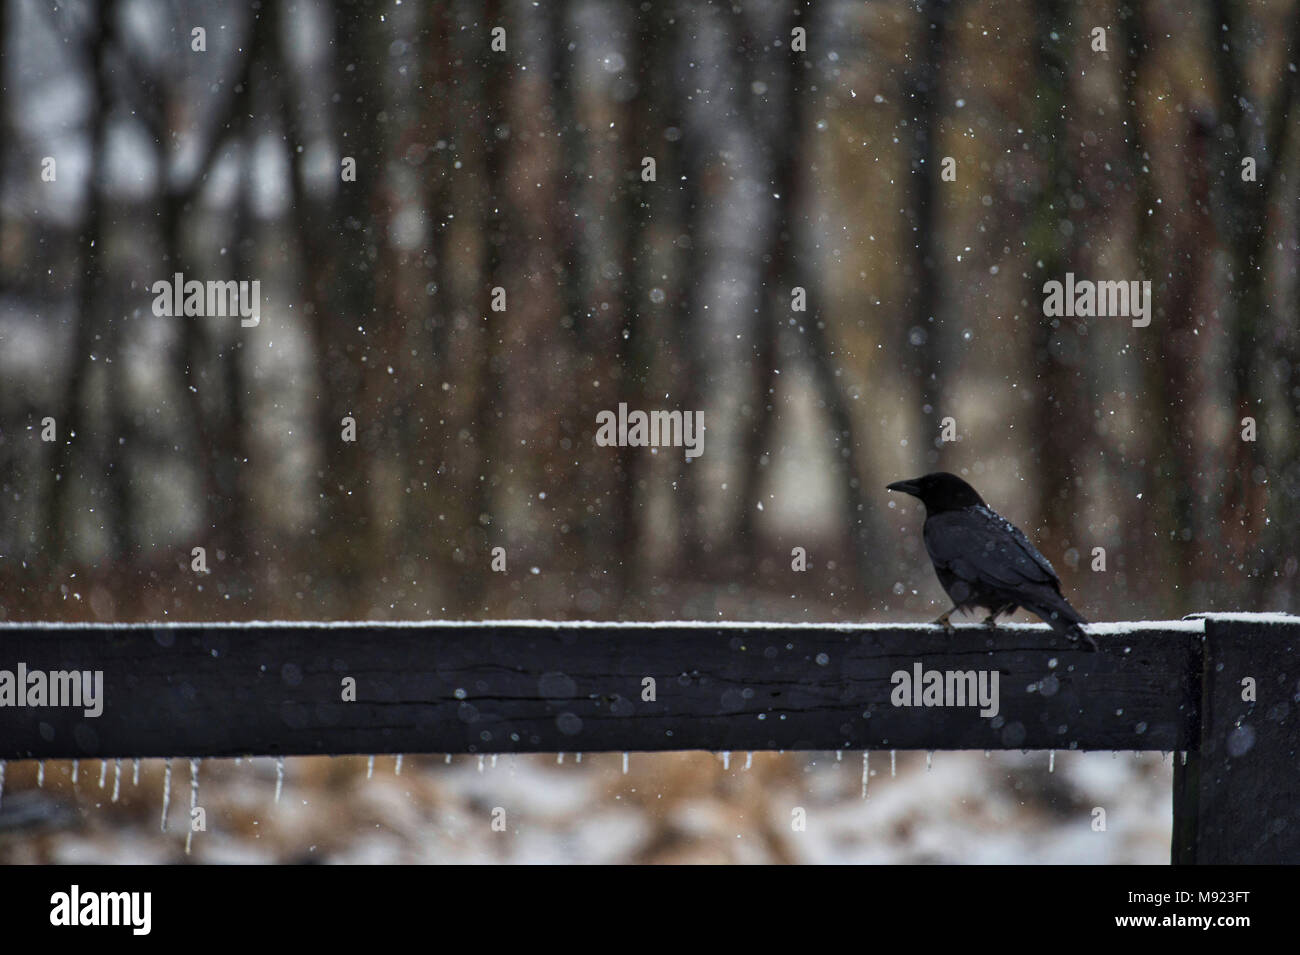 Dead Crow Fence Stock Photos & Dead Crow Fence Stock Images - Alamy